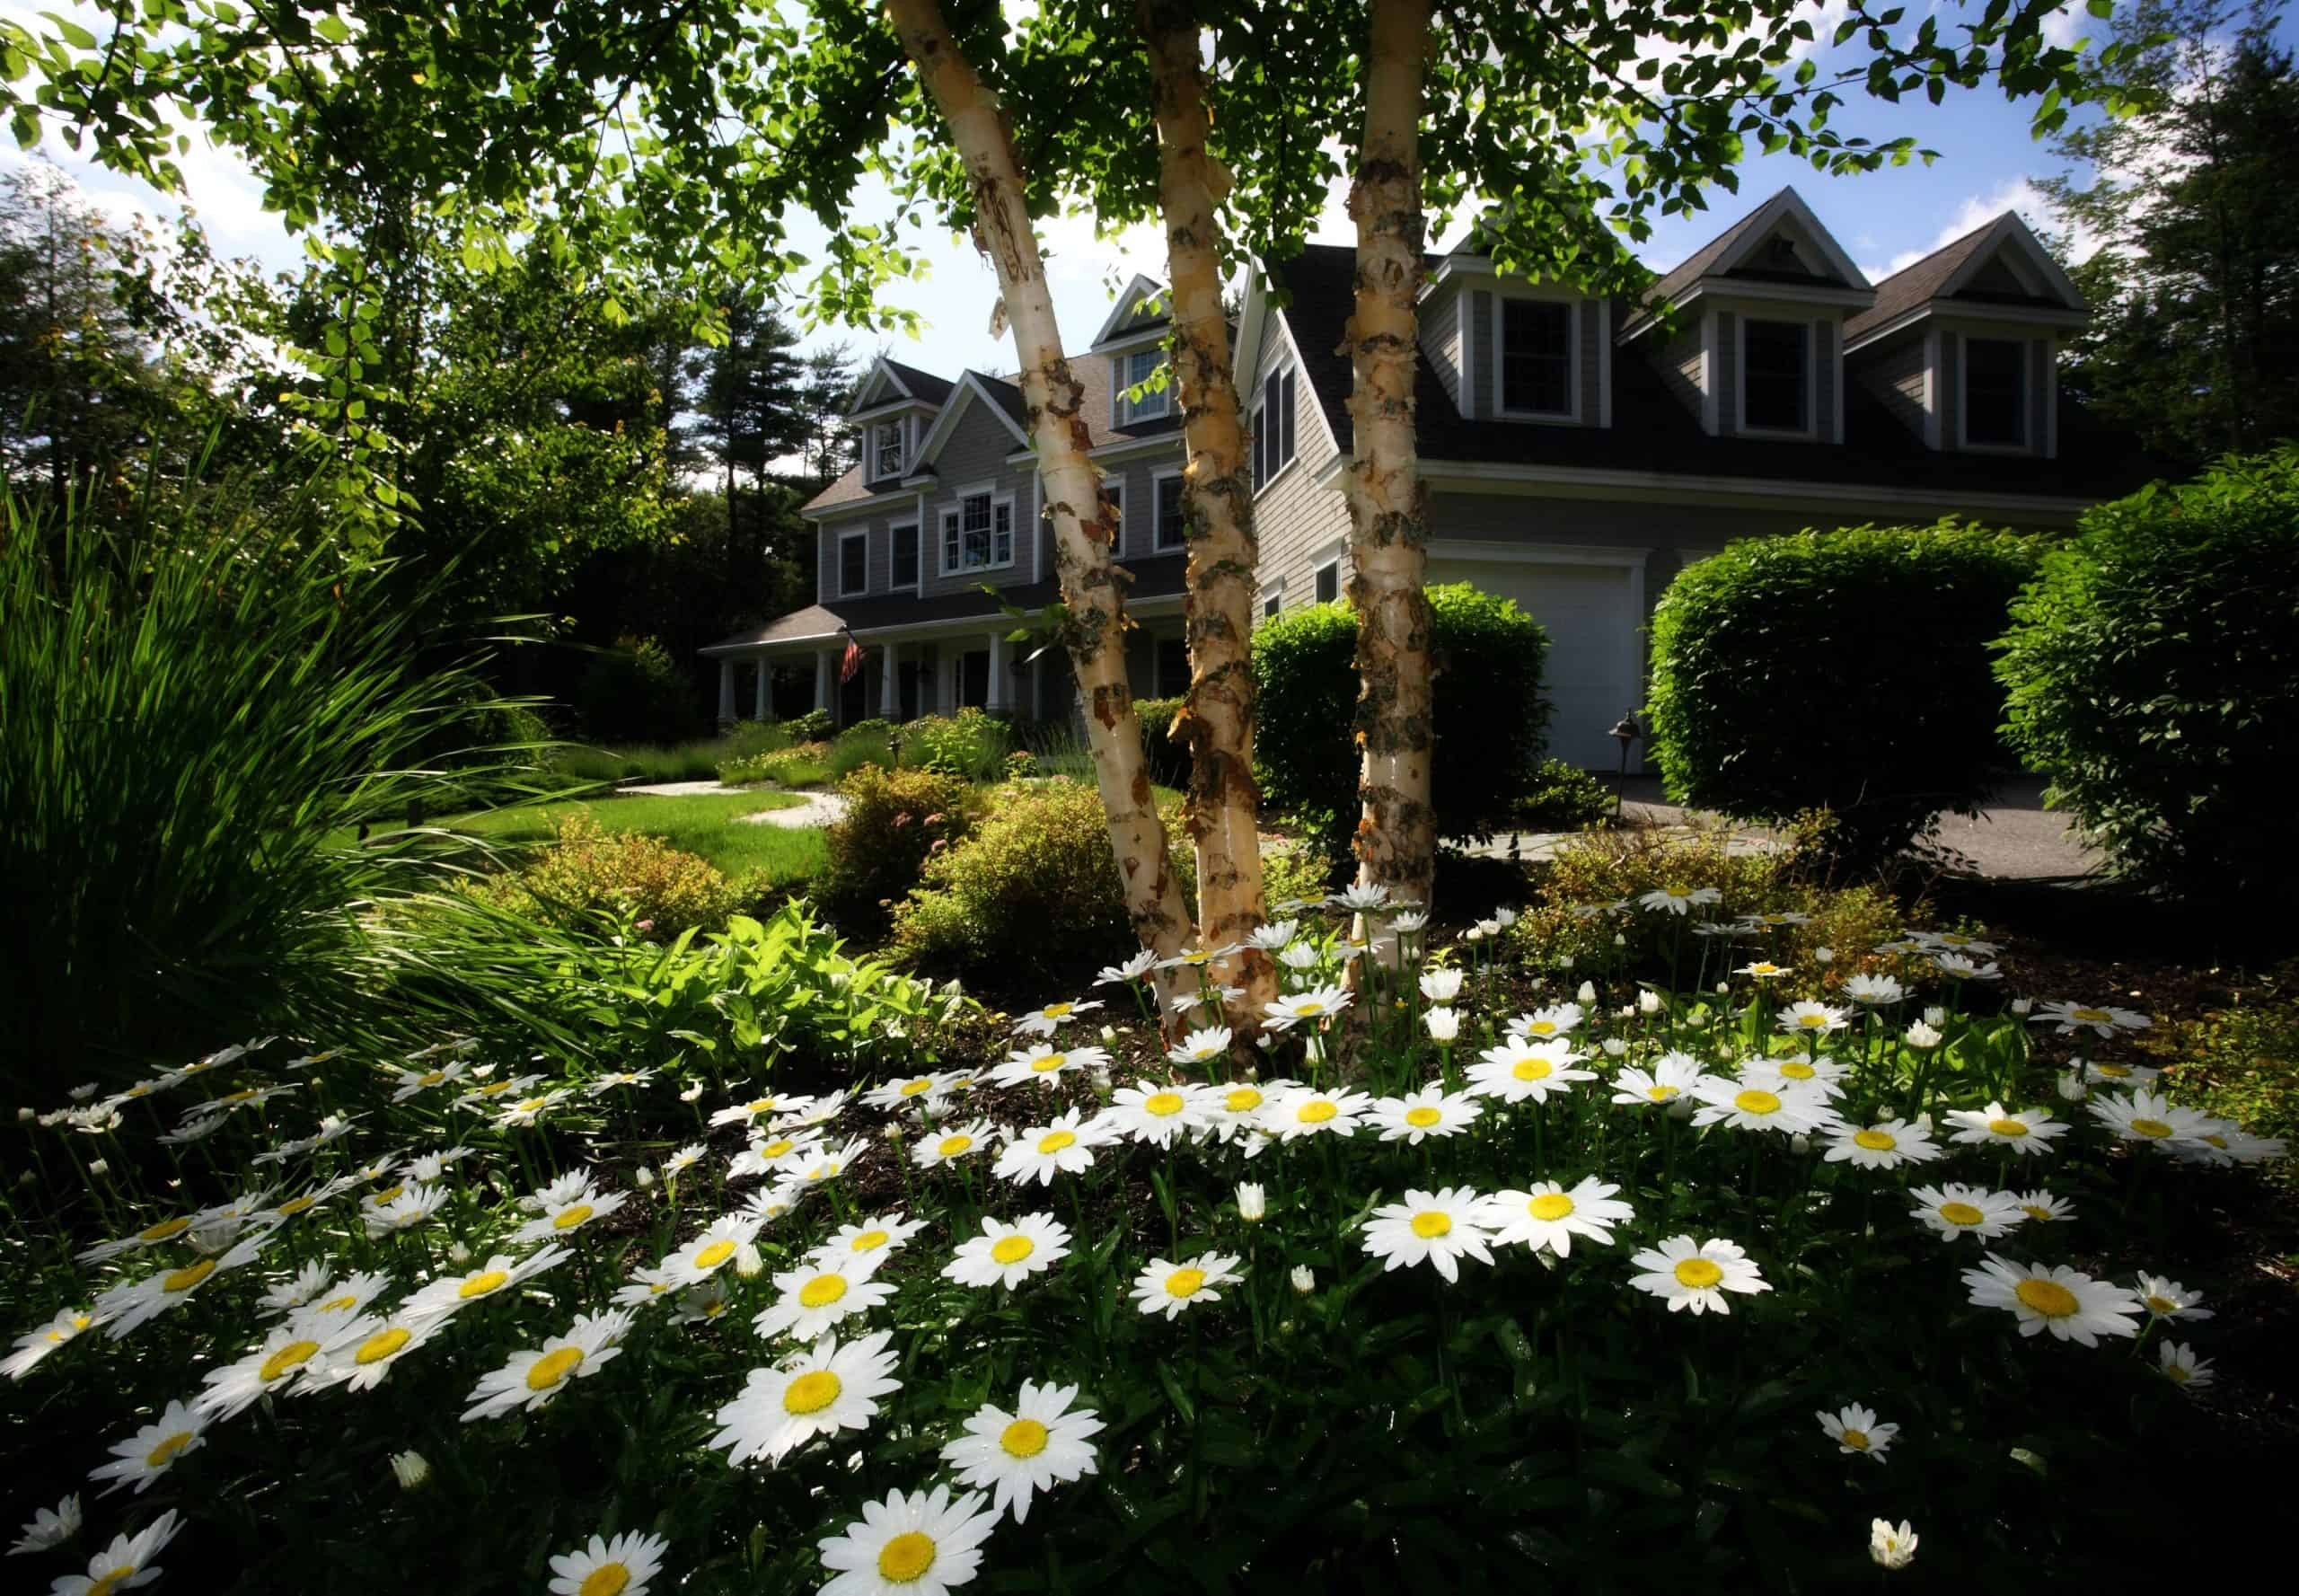 How to landscape your garden - front yard with daisies